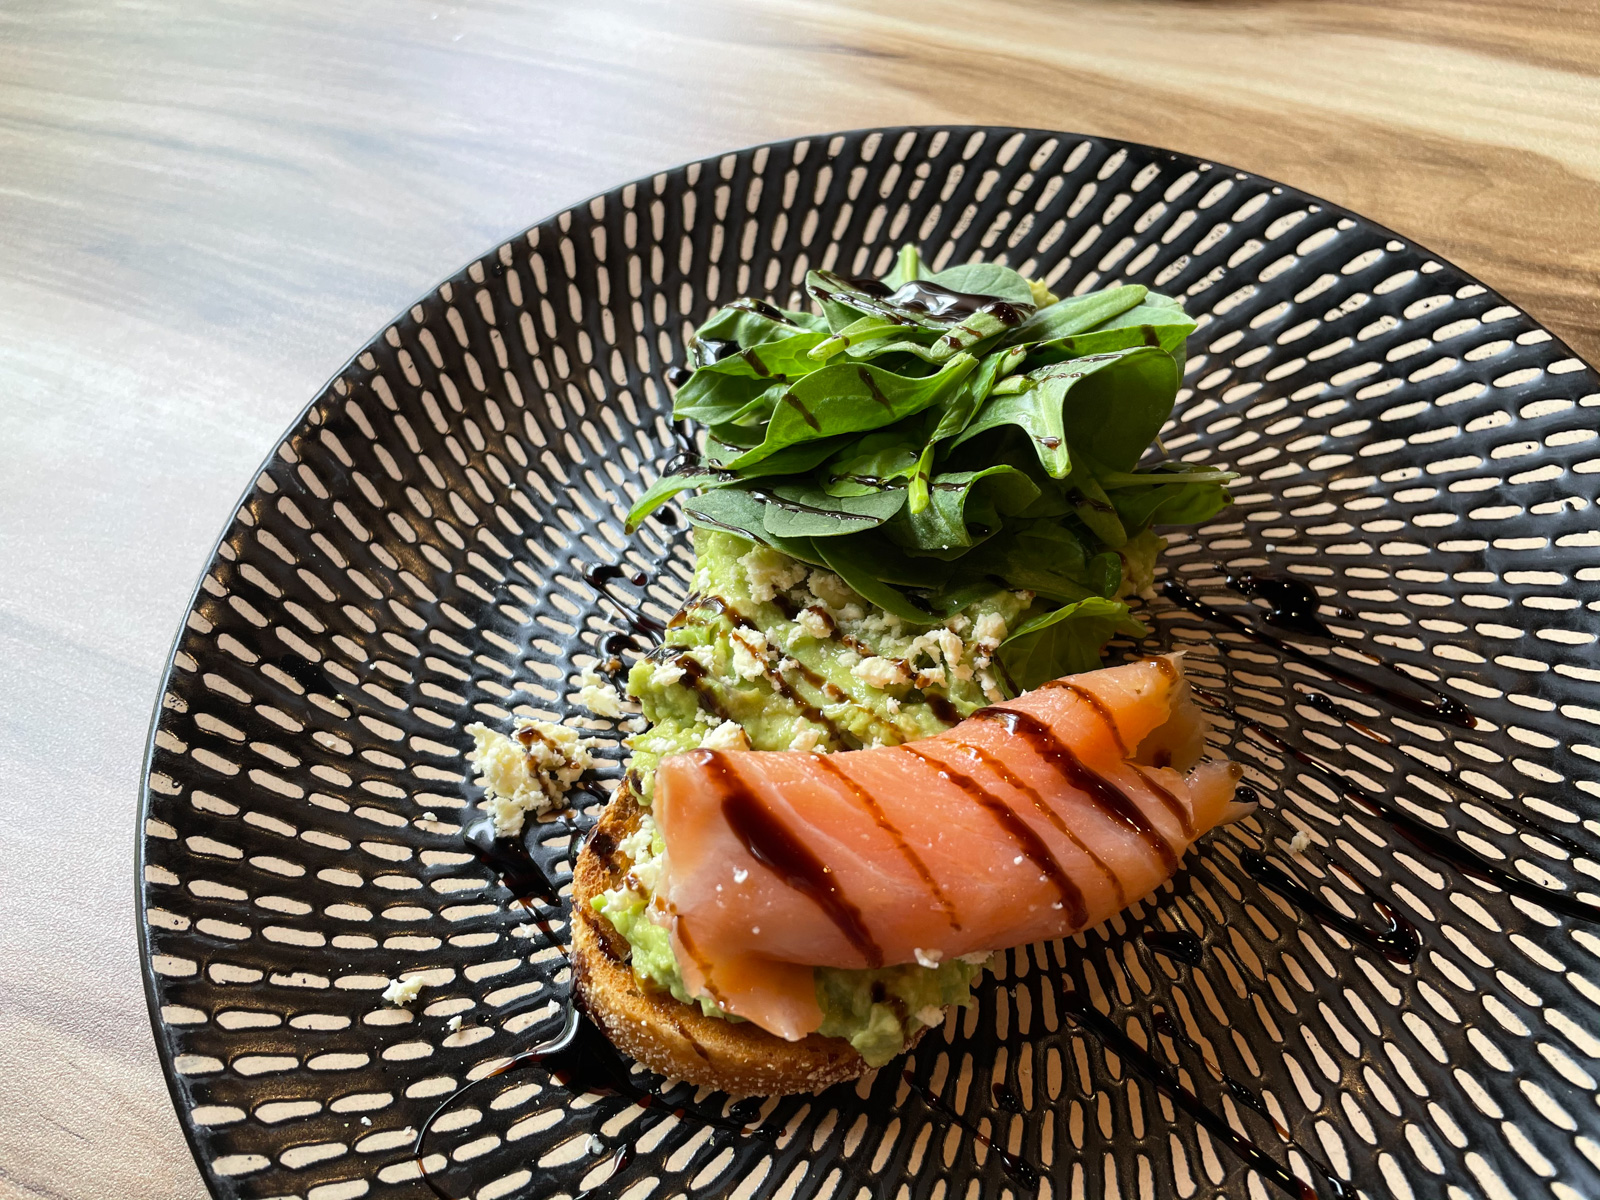 A black and white patterned plate with a slice of toast with smashed avocado spread on it, and topped with spinach, smoked salmon and balsamic glaze